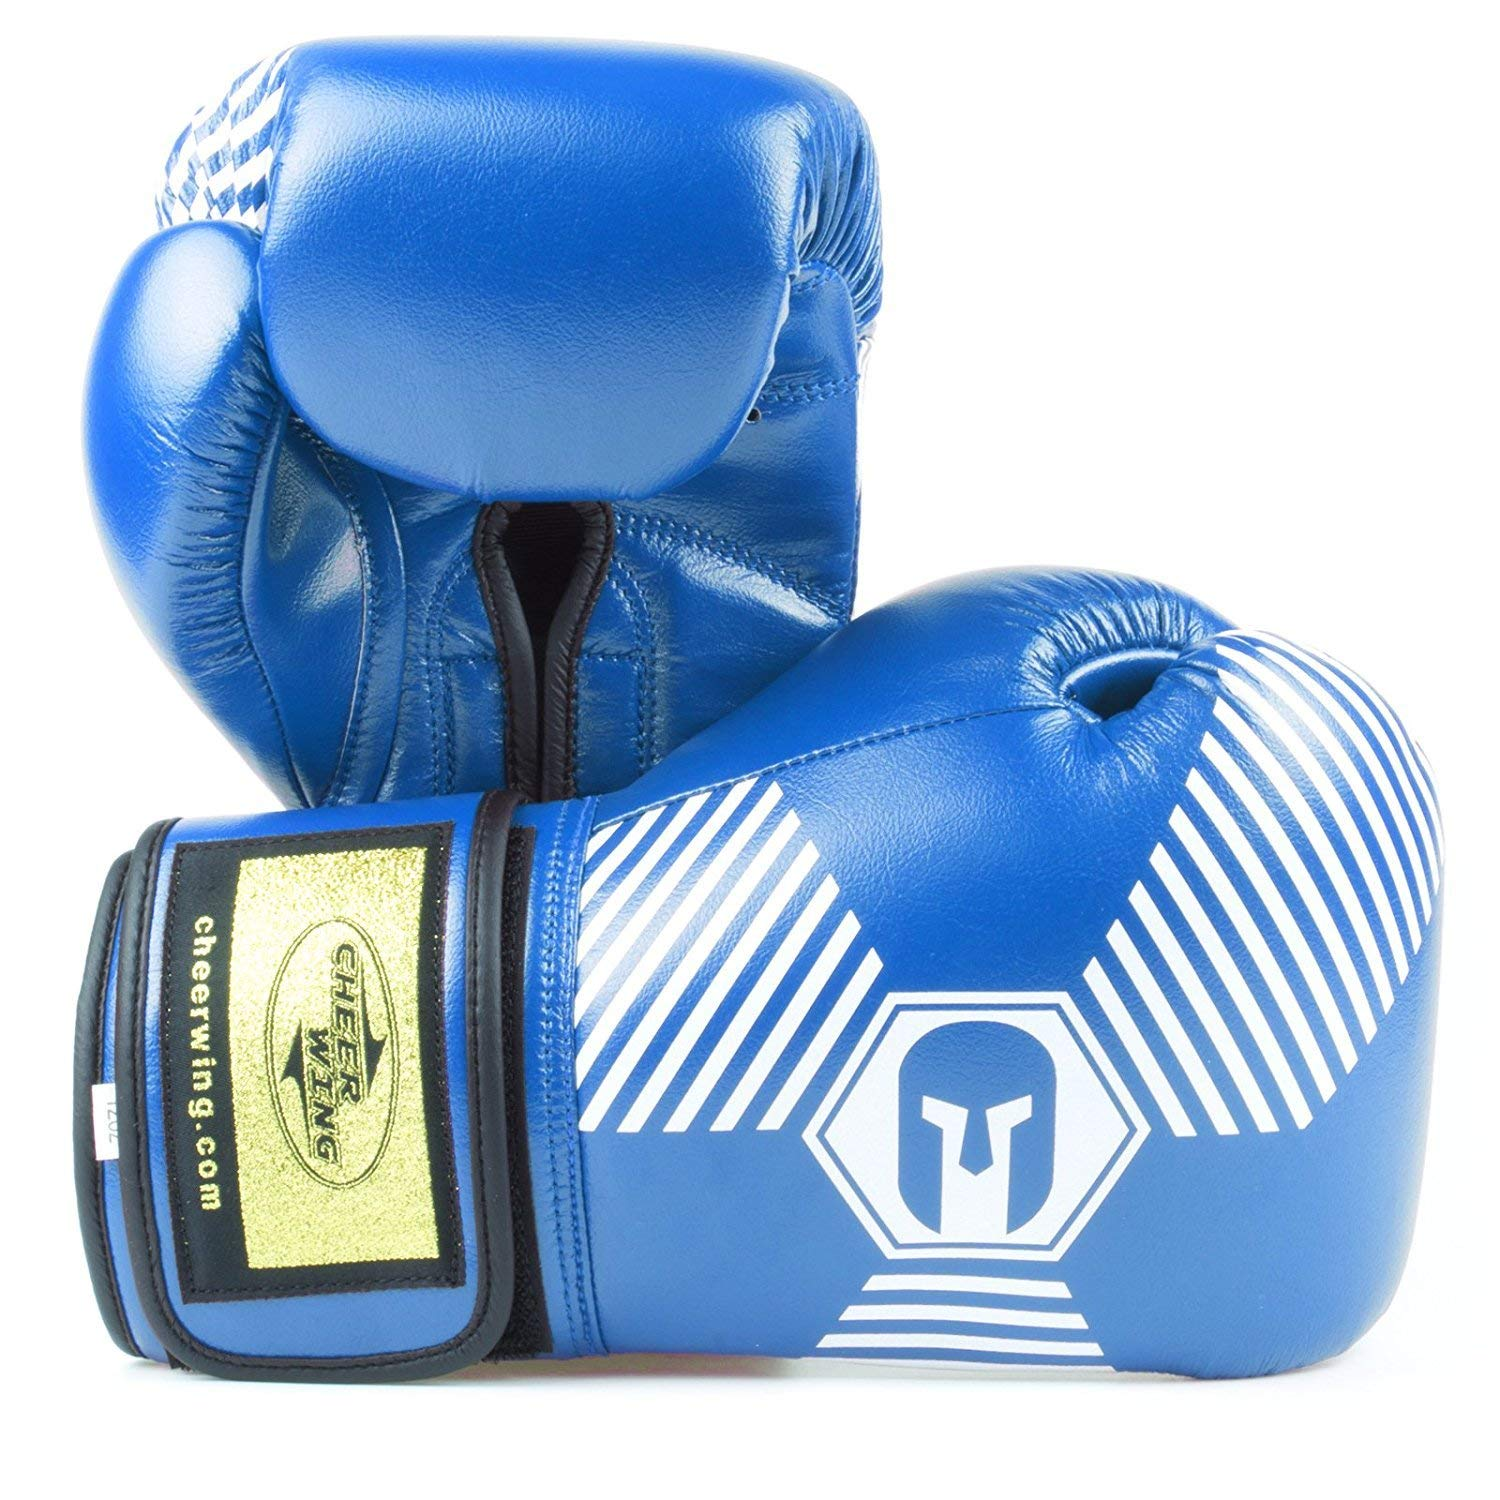 Cheerwing Boxing Gloves Professional Muay Thai Kickboxing Sparring Training Gloves Punching Bag Mitts